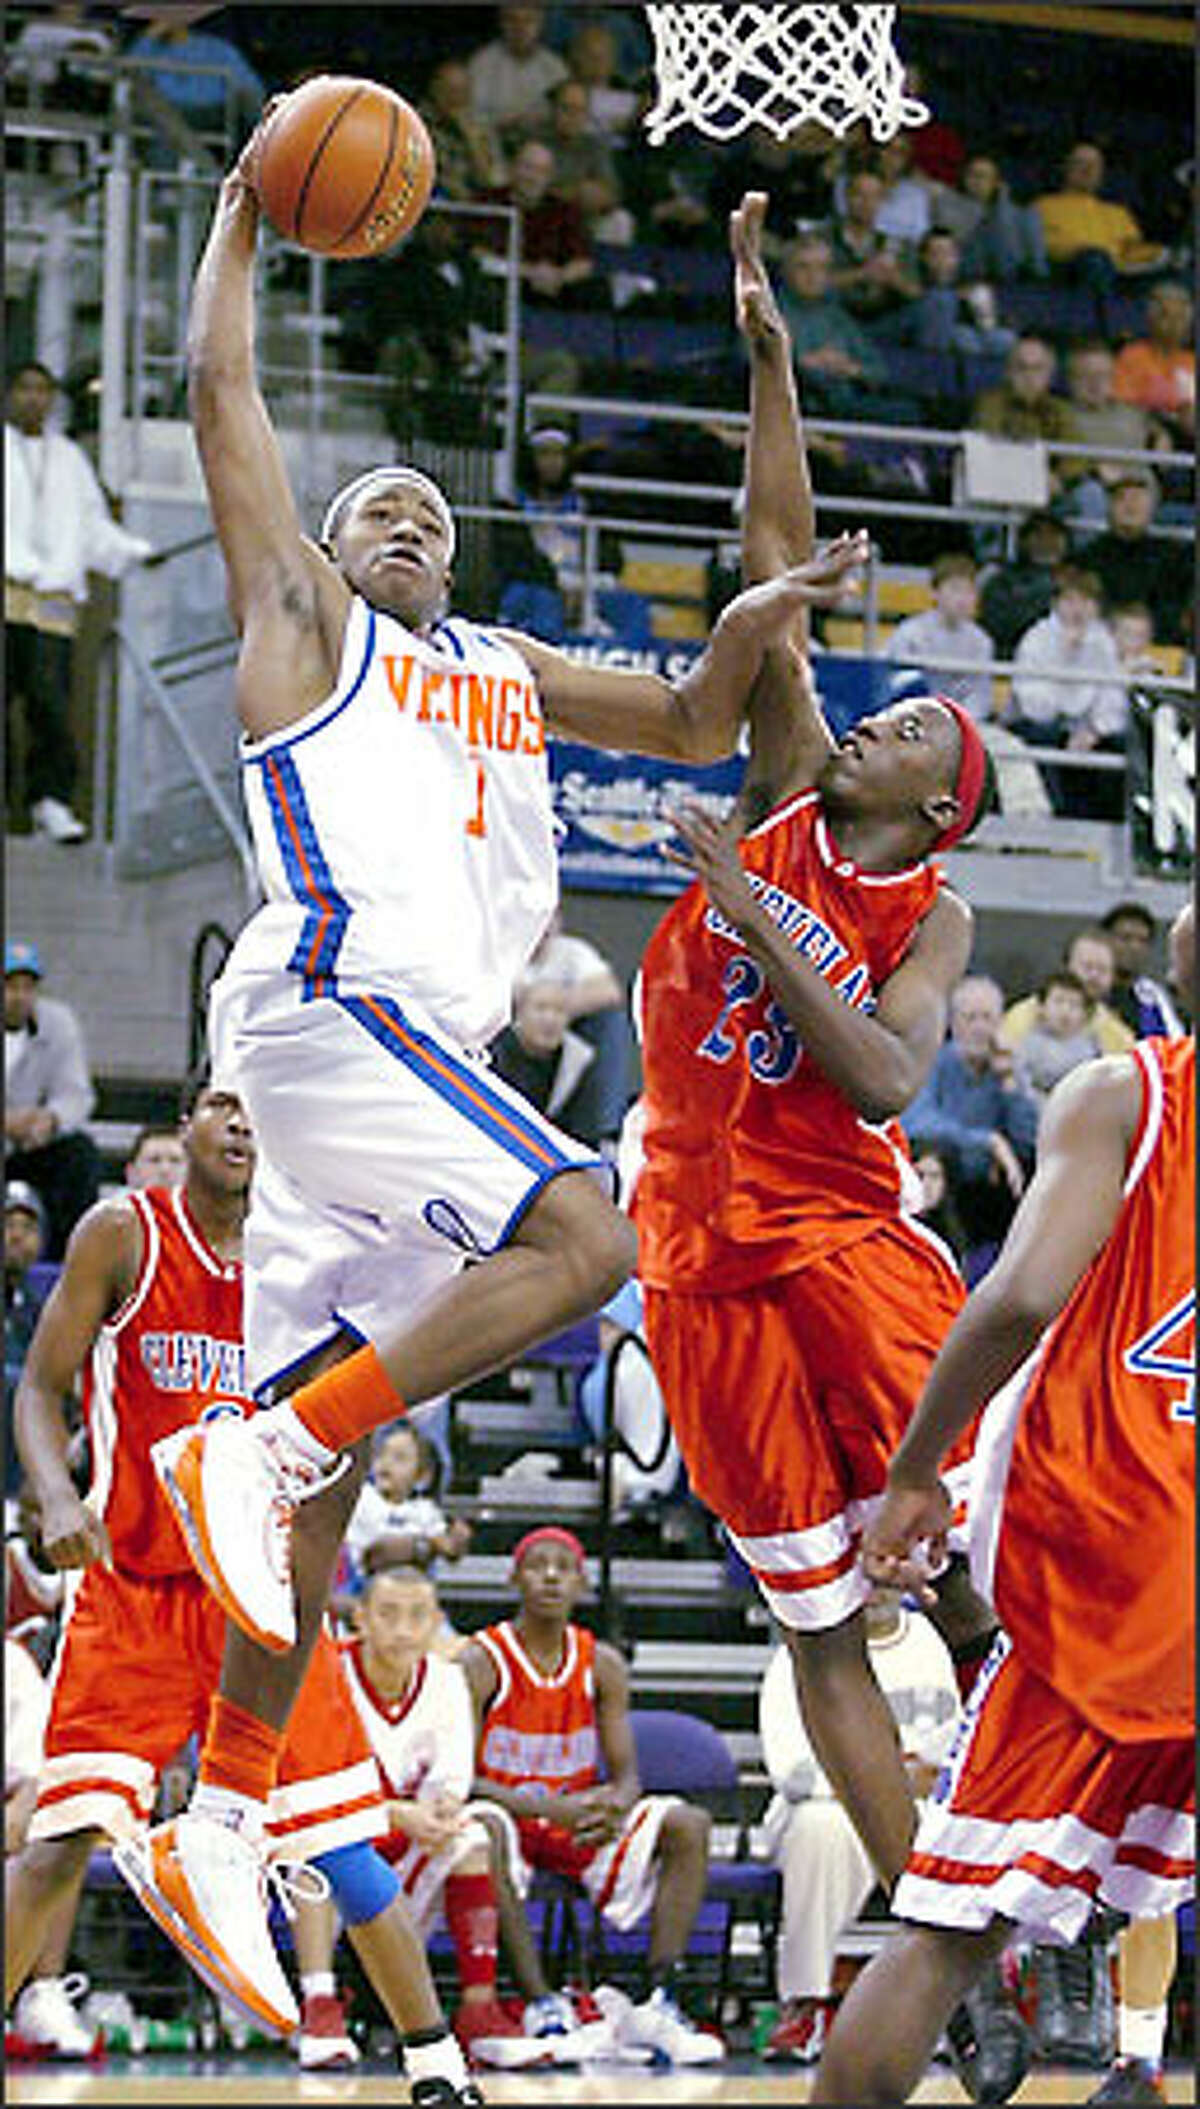 Terrence Williams of Rainier Beach fends off Cleveland defender Jason Pegues on a drive to the basket during the marquee game of the King Holiday Hoopfest yesterday at Hec Edmundson Pavilion. Williams scored a game-high 23 points and Rainier Beach withstood a fourth-quarter Cleveland rally for a 70-66 victory.